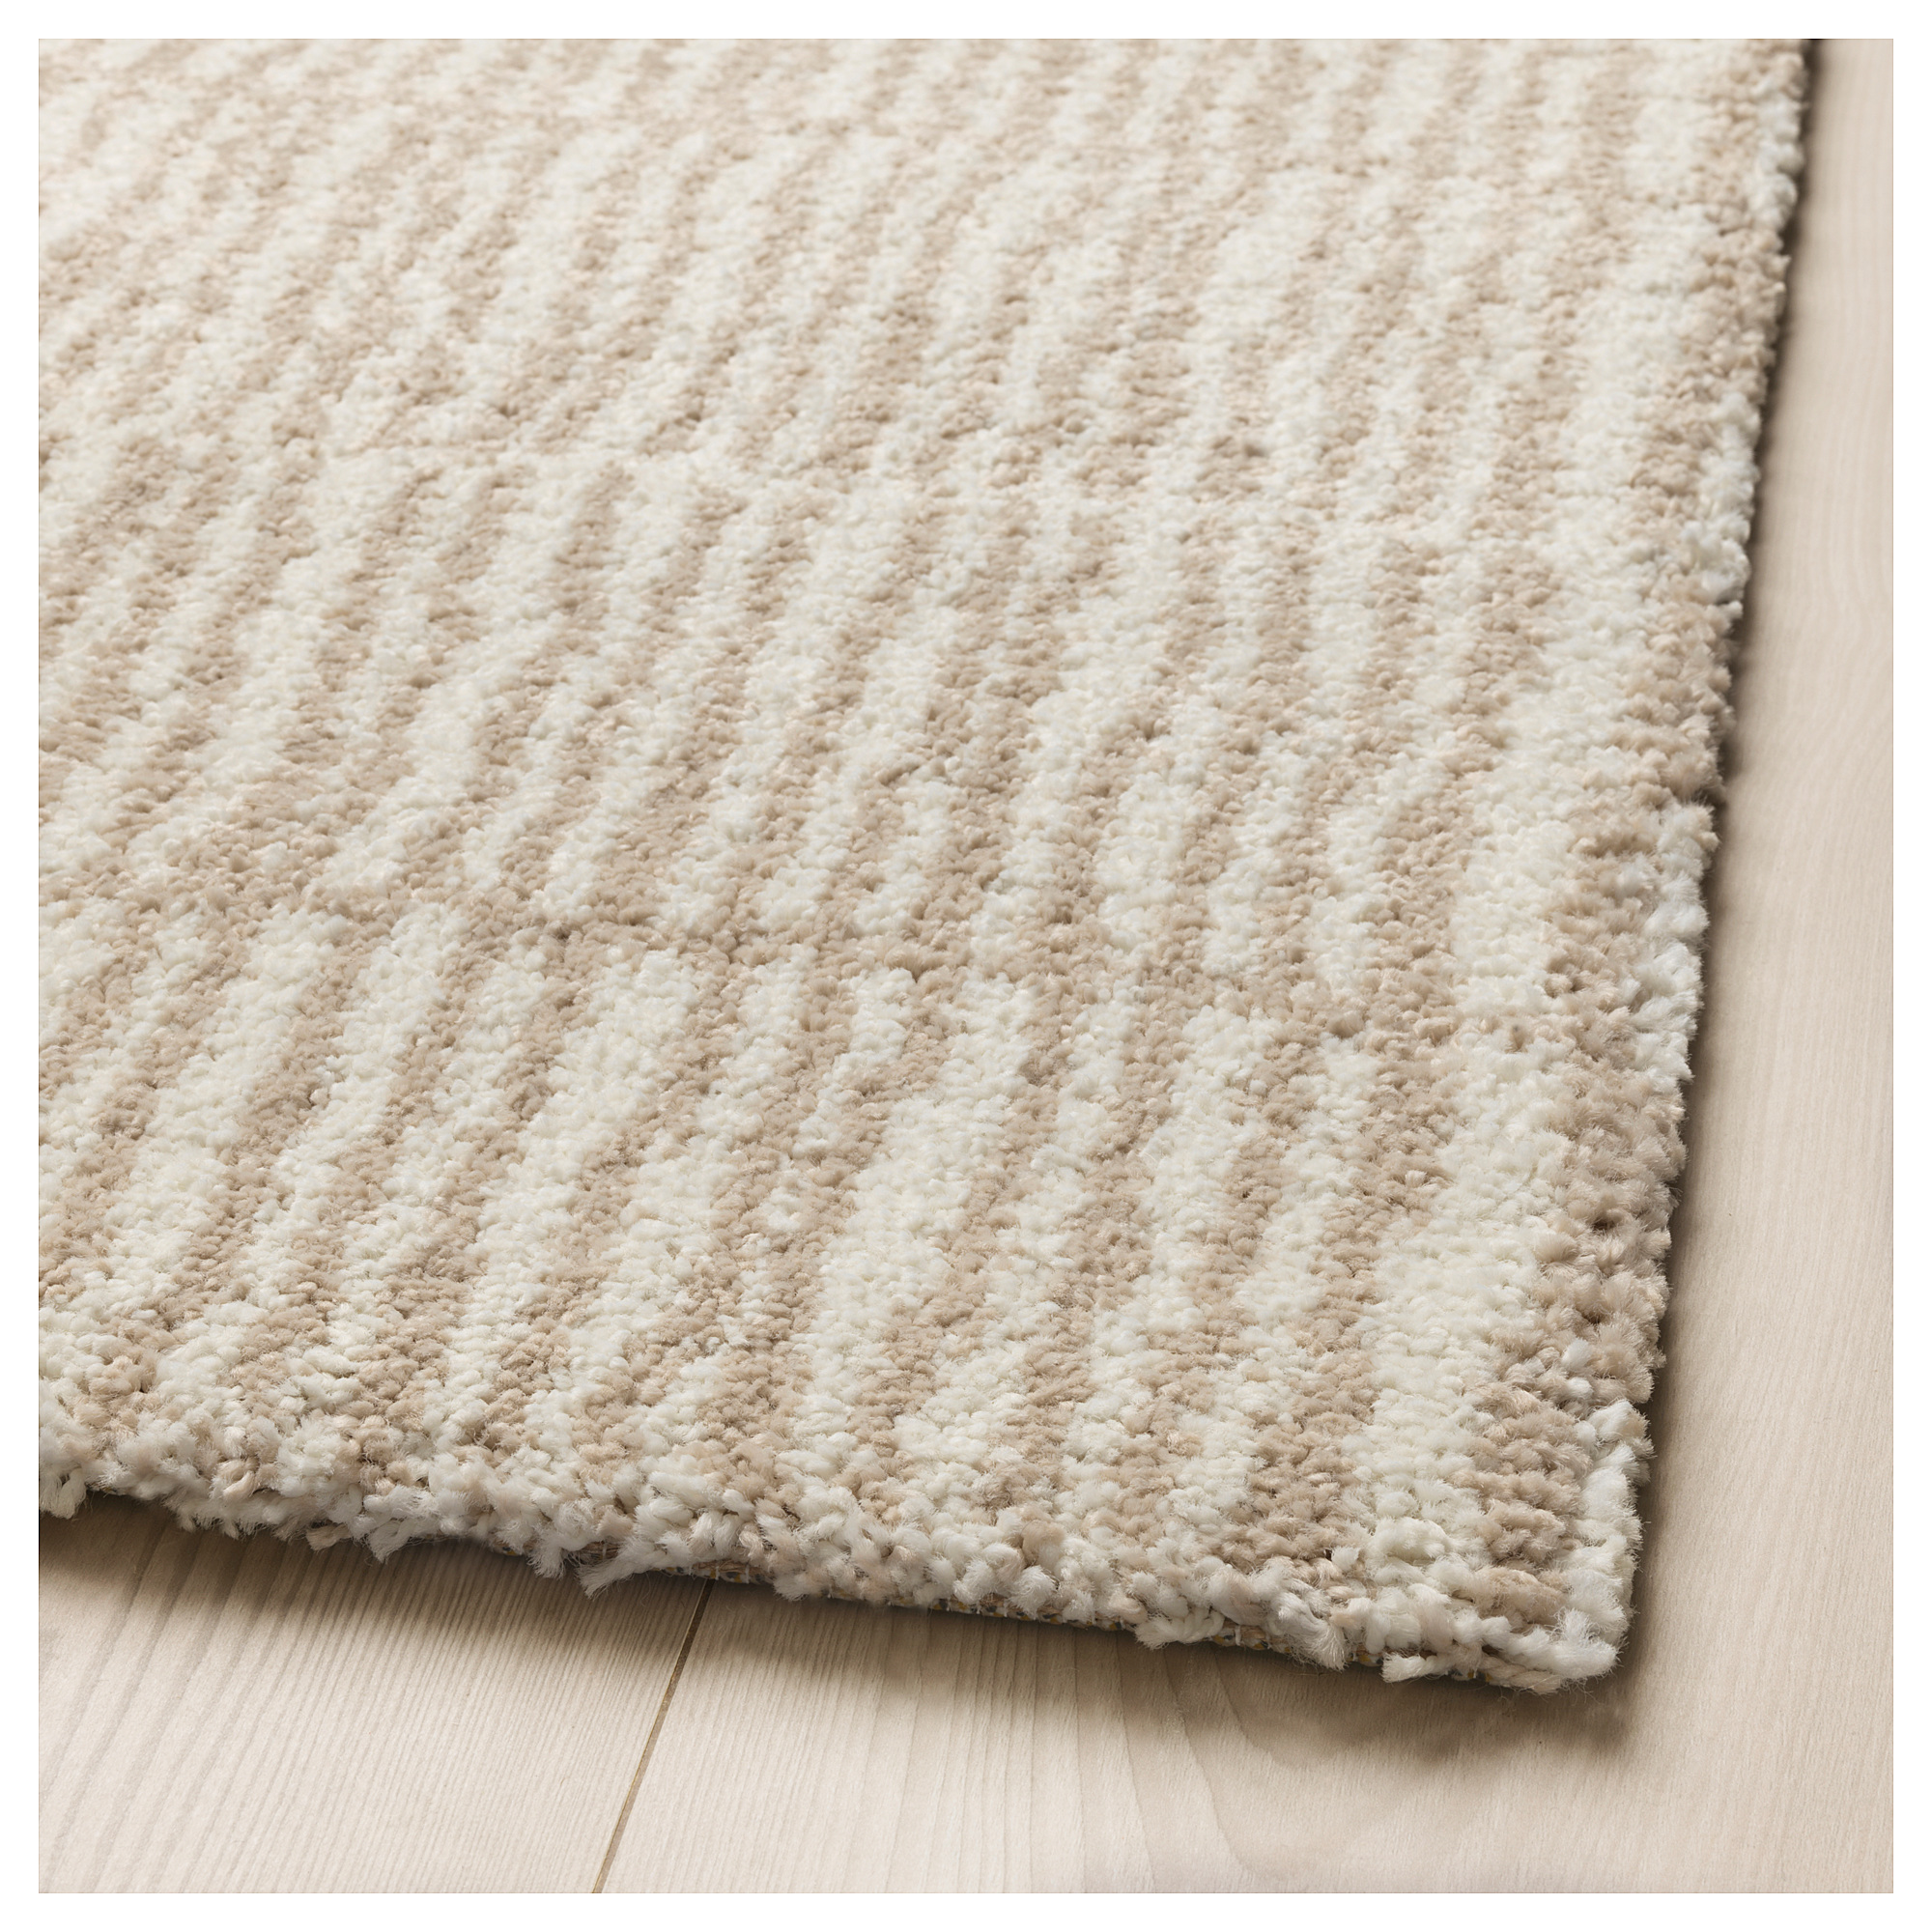 Ikea Lindelse Rug High Pile Natural Beige Sunroom In